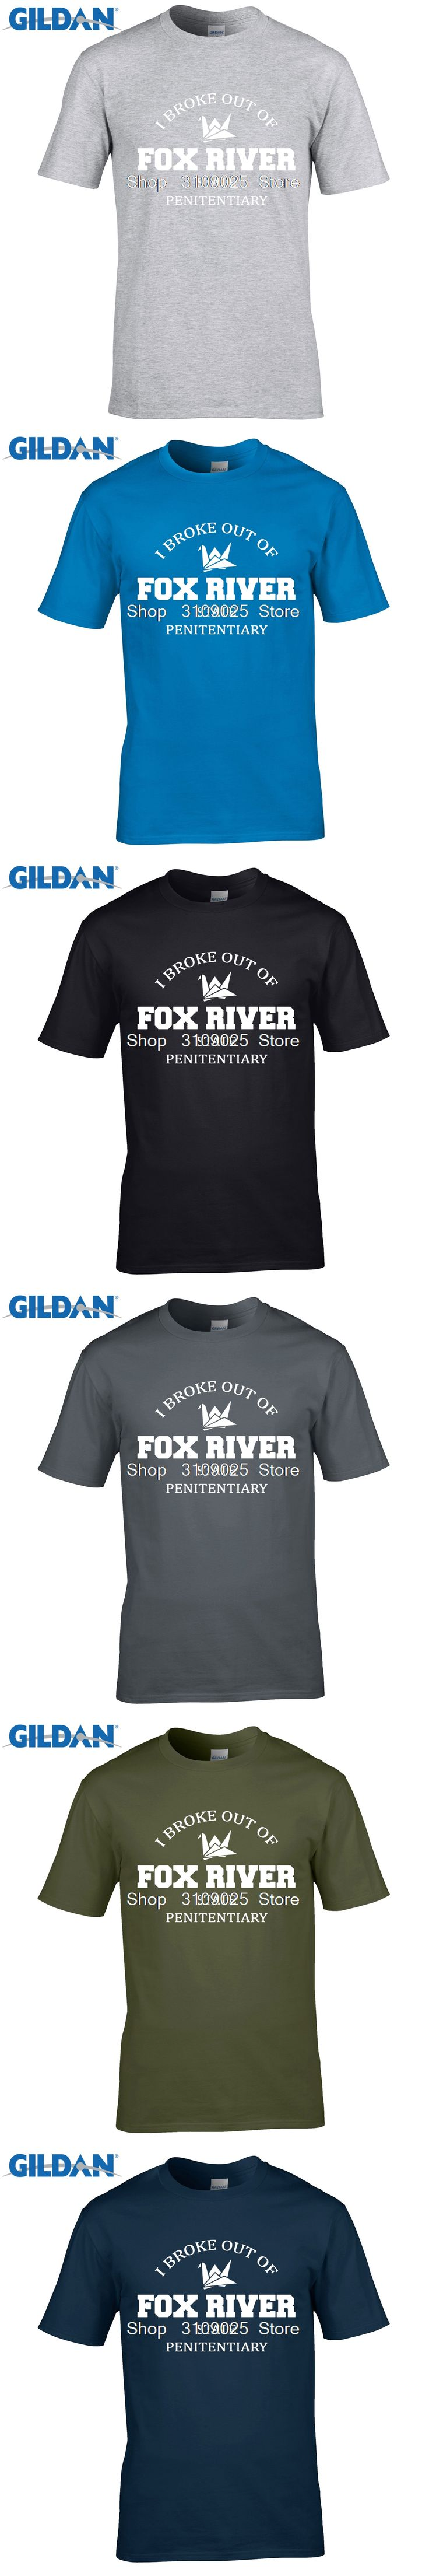 GILDAN funny men t shirt Prison Break Miller Mahone 100% cotton homme T-shirt I broke out of fox river Geek T shirt Summer Men